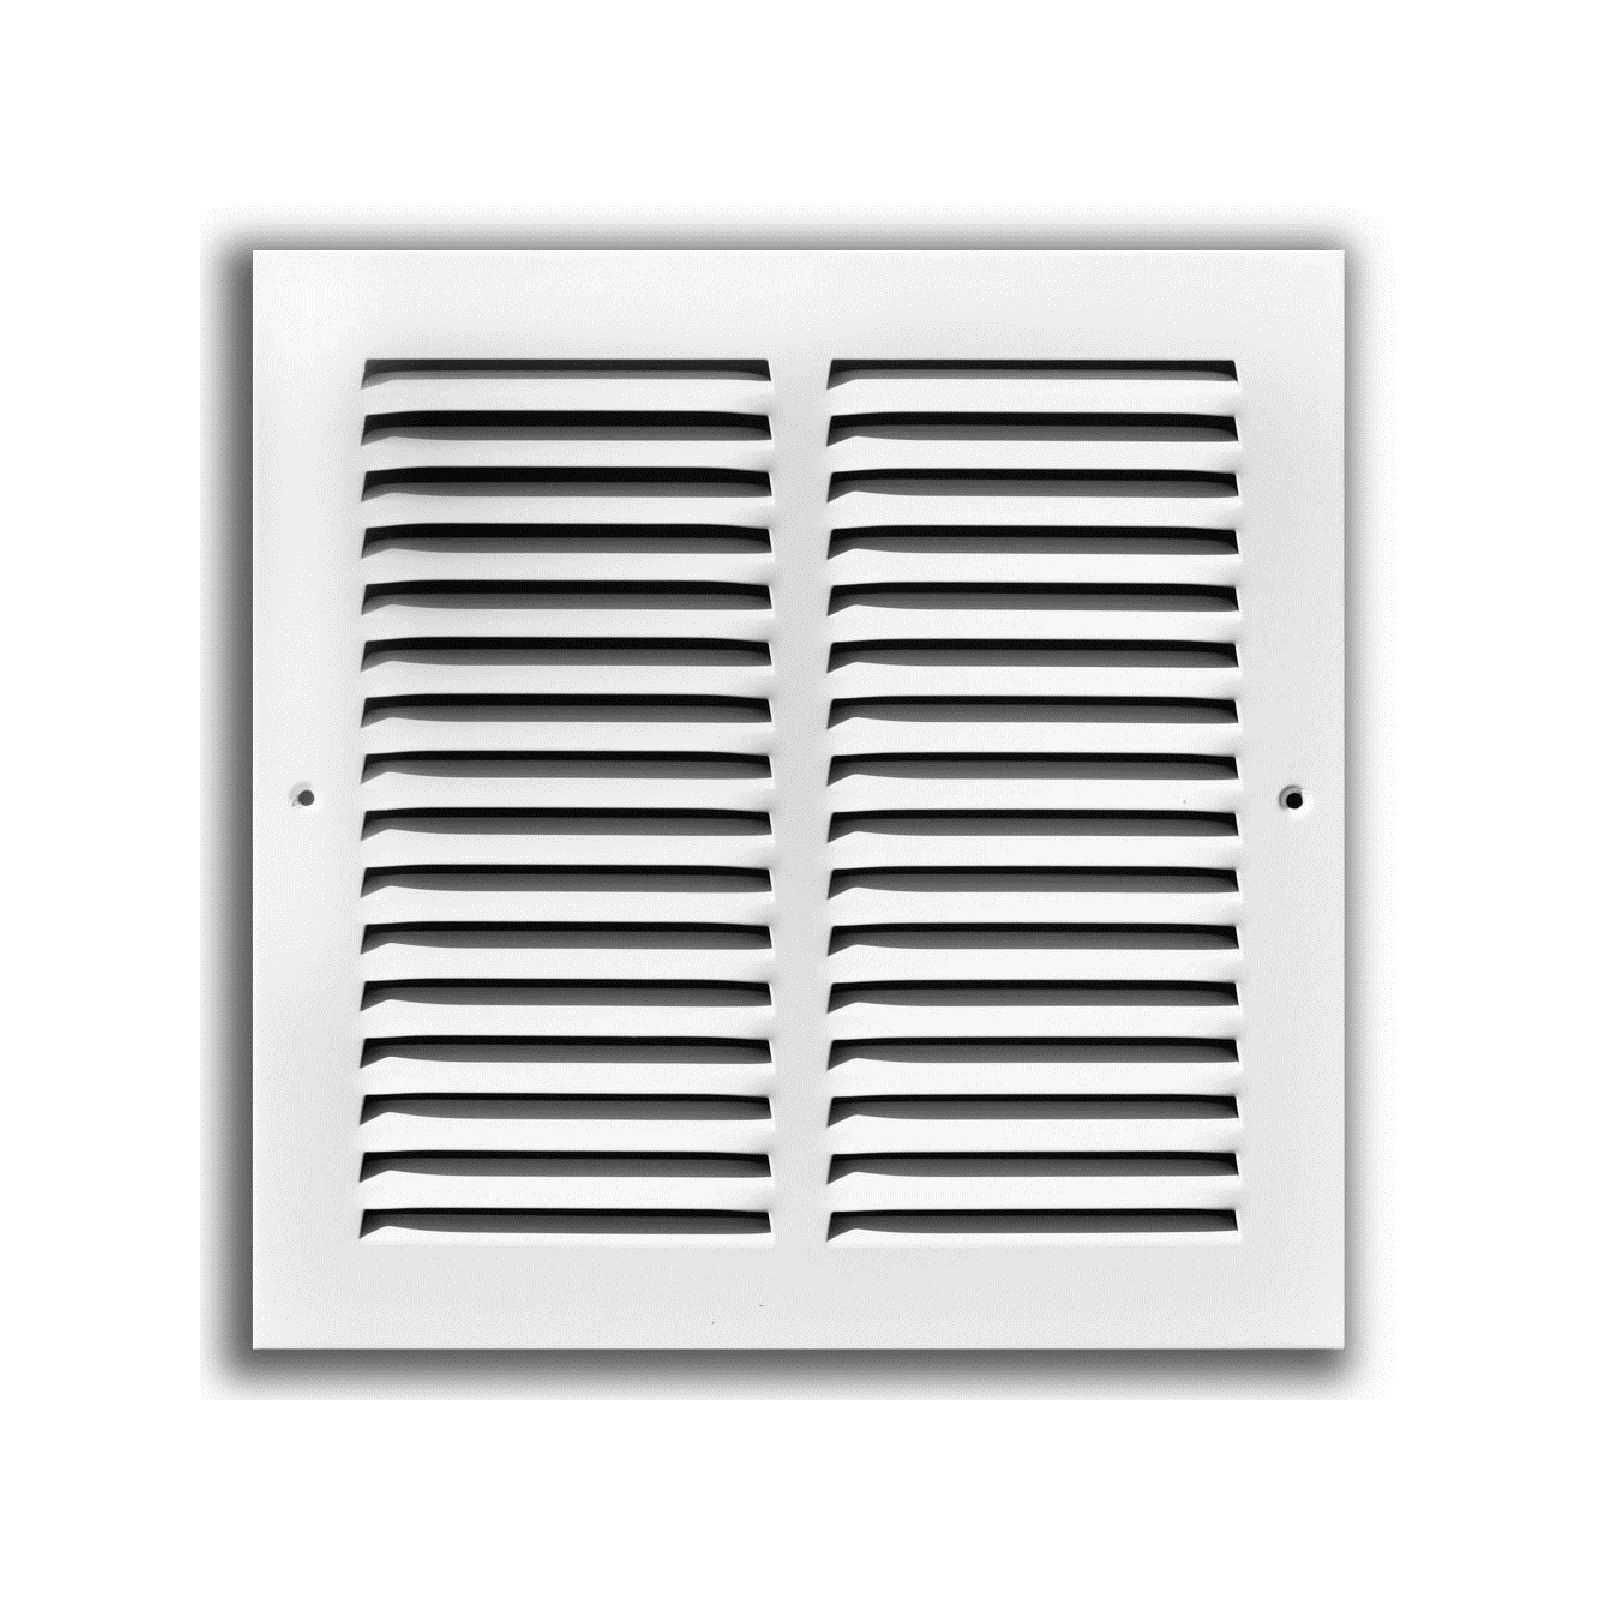 "TRUaire 170 30X06 - Steel Return Air Grille - 1/2"" Spaced Fin, White, 30"" X 06"""